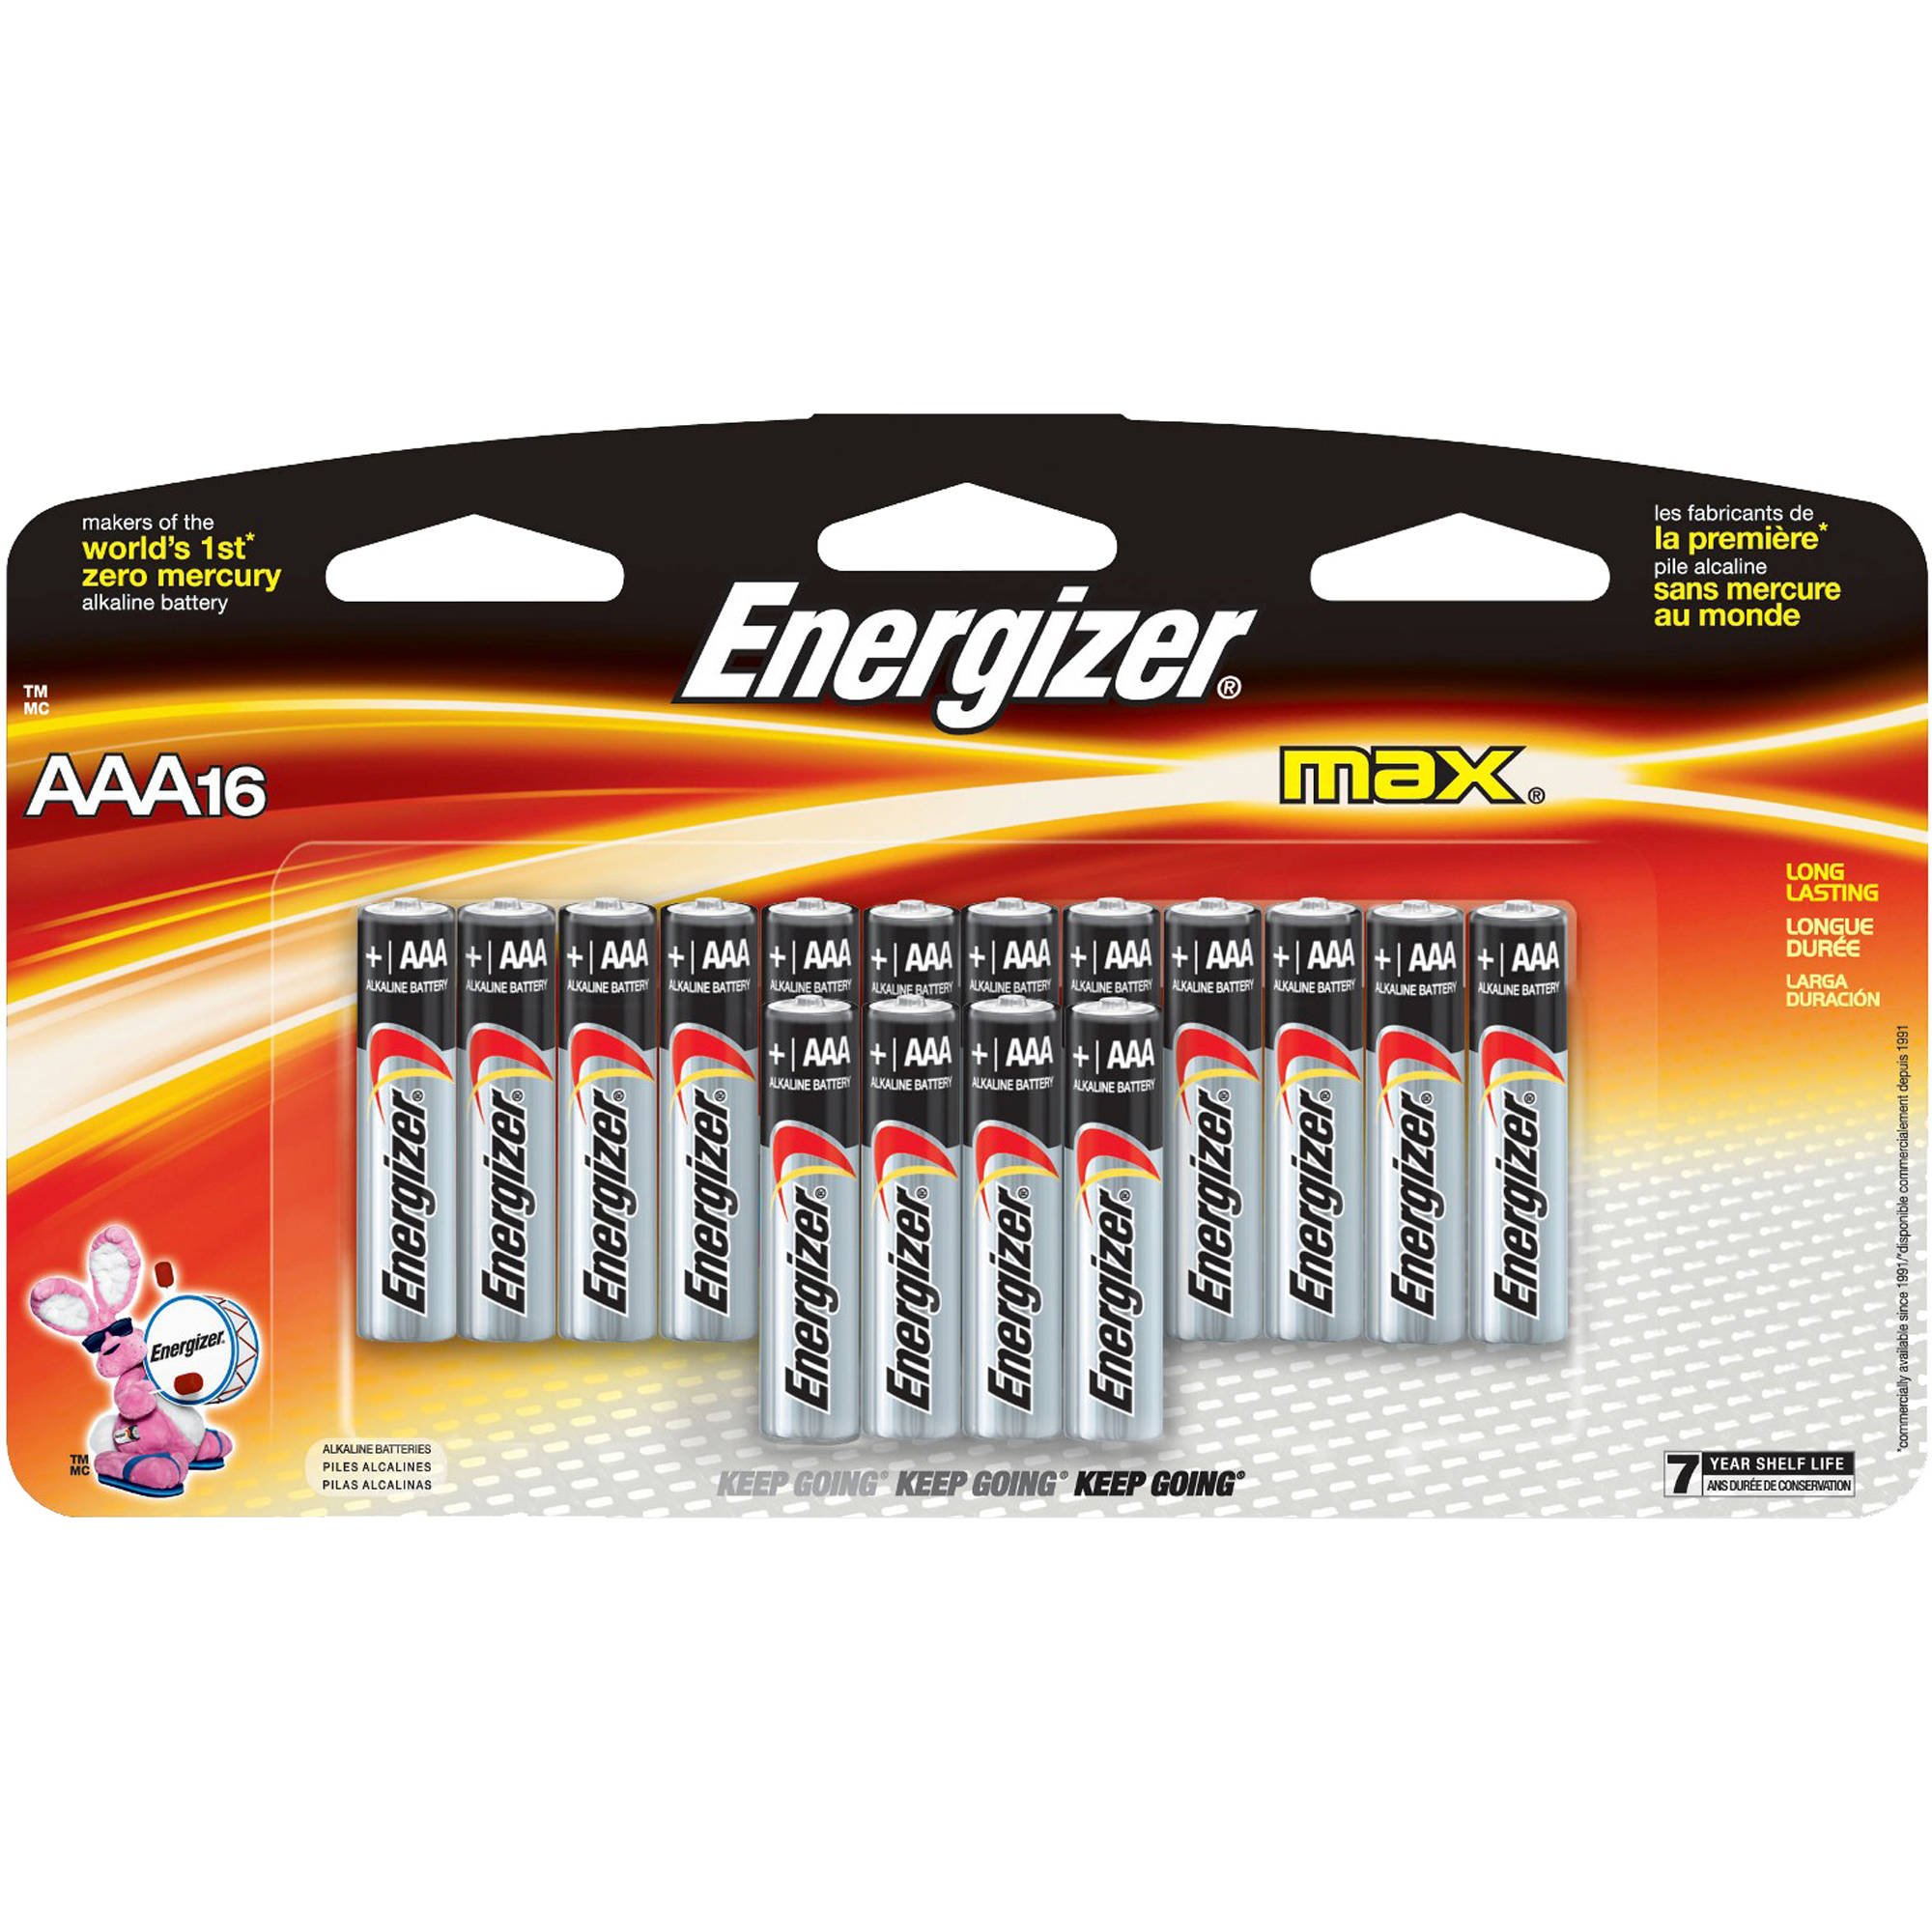 Energizer Max AAA, 16 Pack Household Batteries